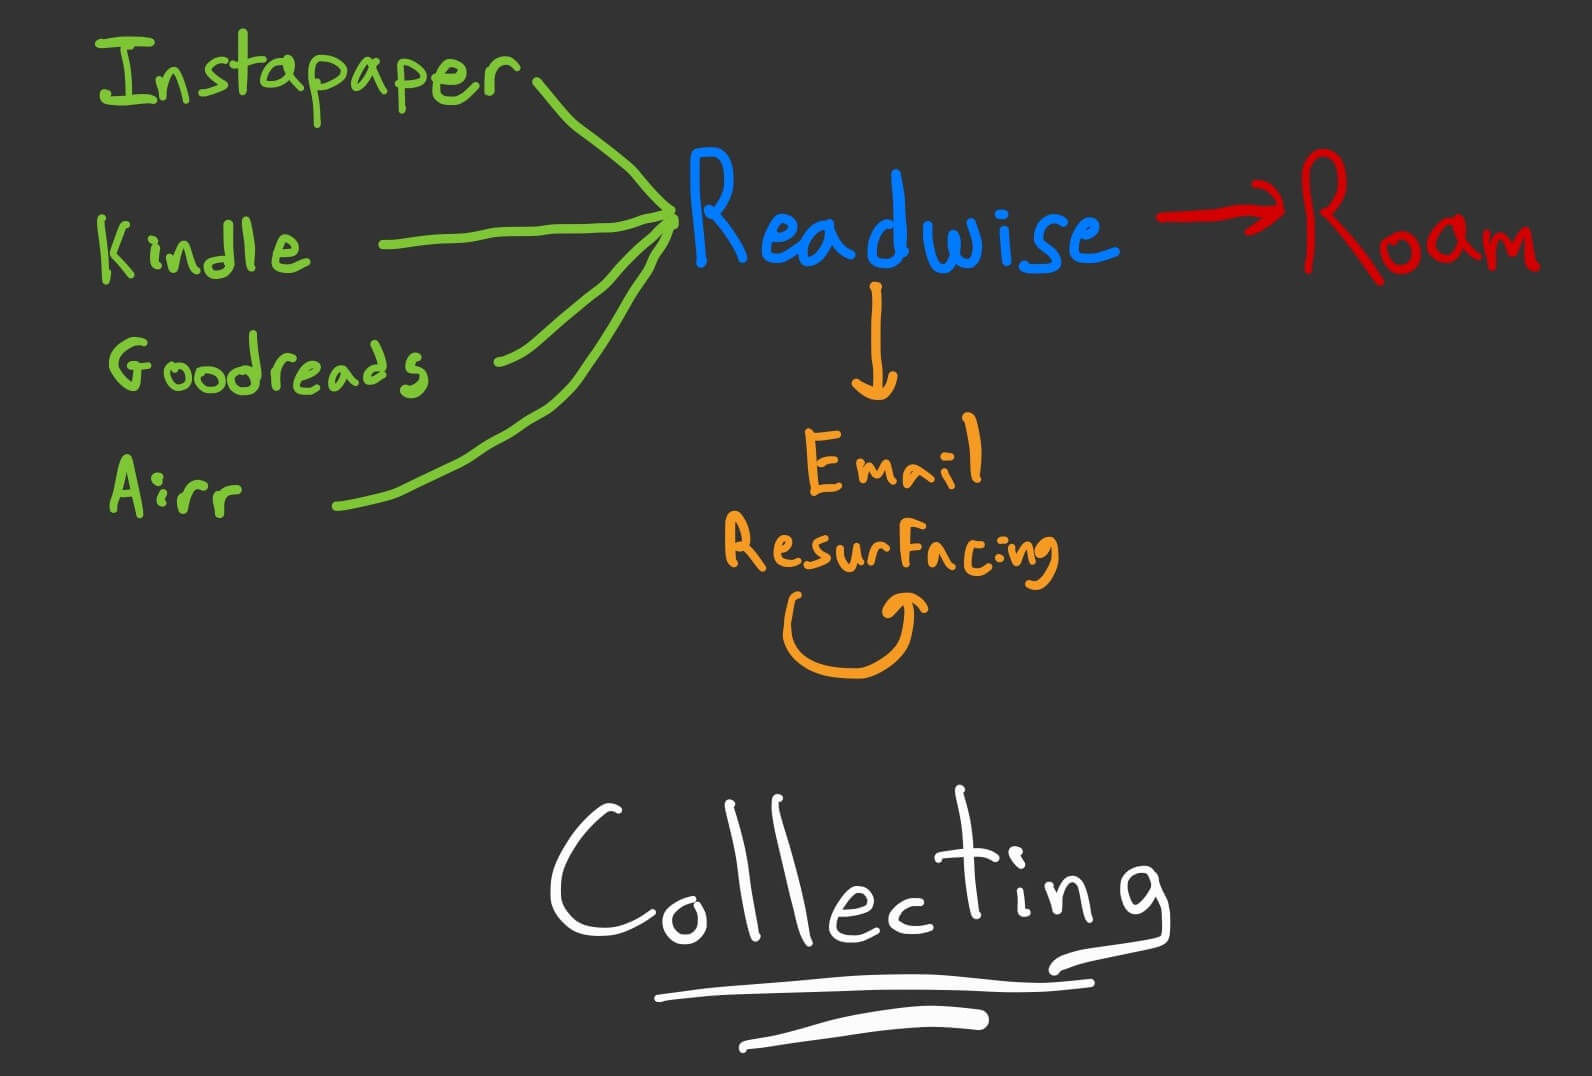 Diagram of the Collecting workflow. Sources like Instapaper, Kindle, Goodreads, and Airr all are fed into Readwise, which periodically resurfaces your notes via email and exports to Roam